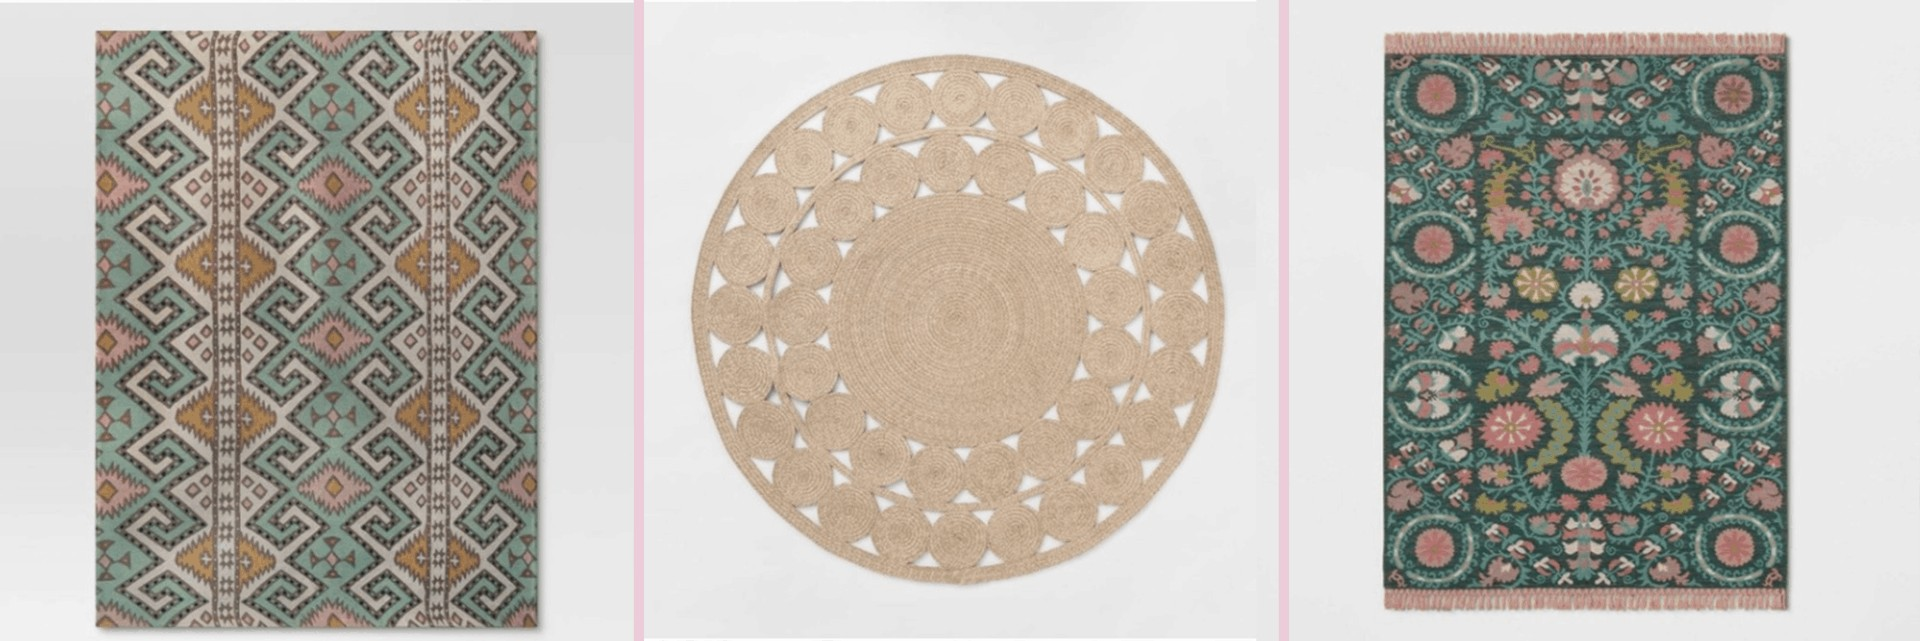 How To Clean An Outdoor Rug Round Up, Round Outdoor Rugs Target Australia